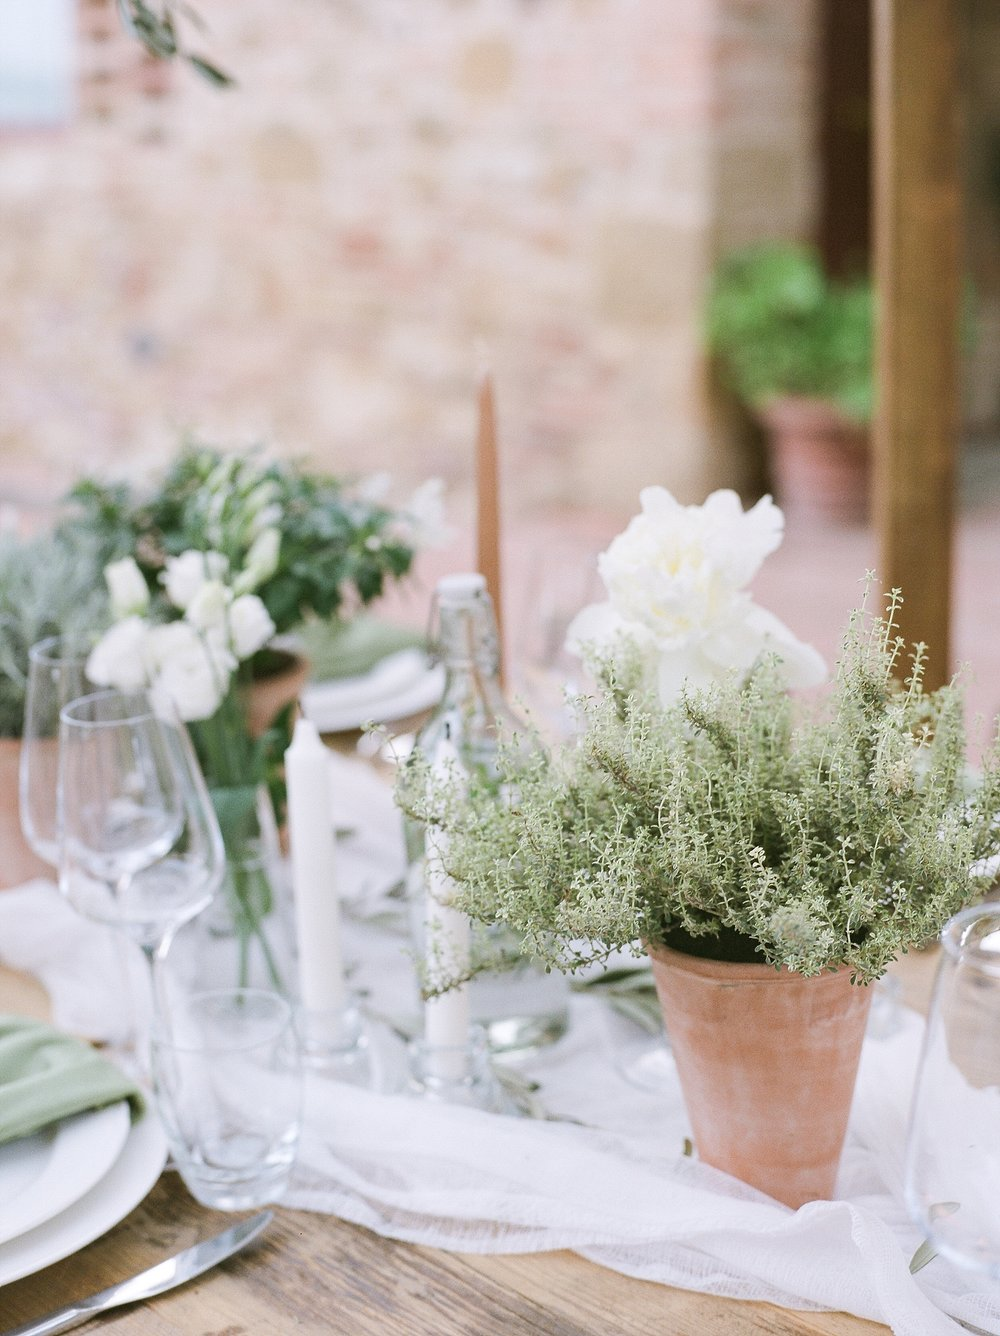 All White Destination Wedding in the Hills of Tuscany Italy at Estate Borgo Petrognano by Kelsi Kliethermes Photography_0074.jpg